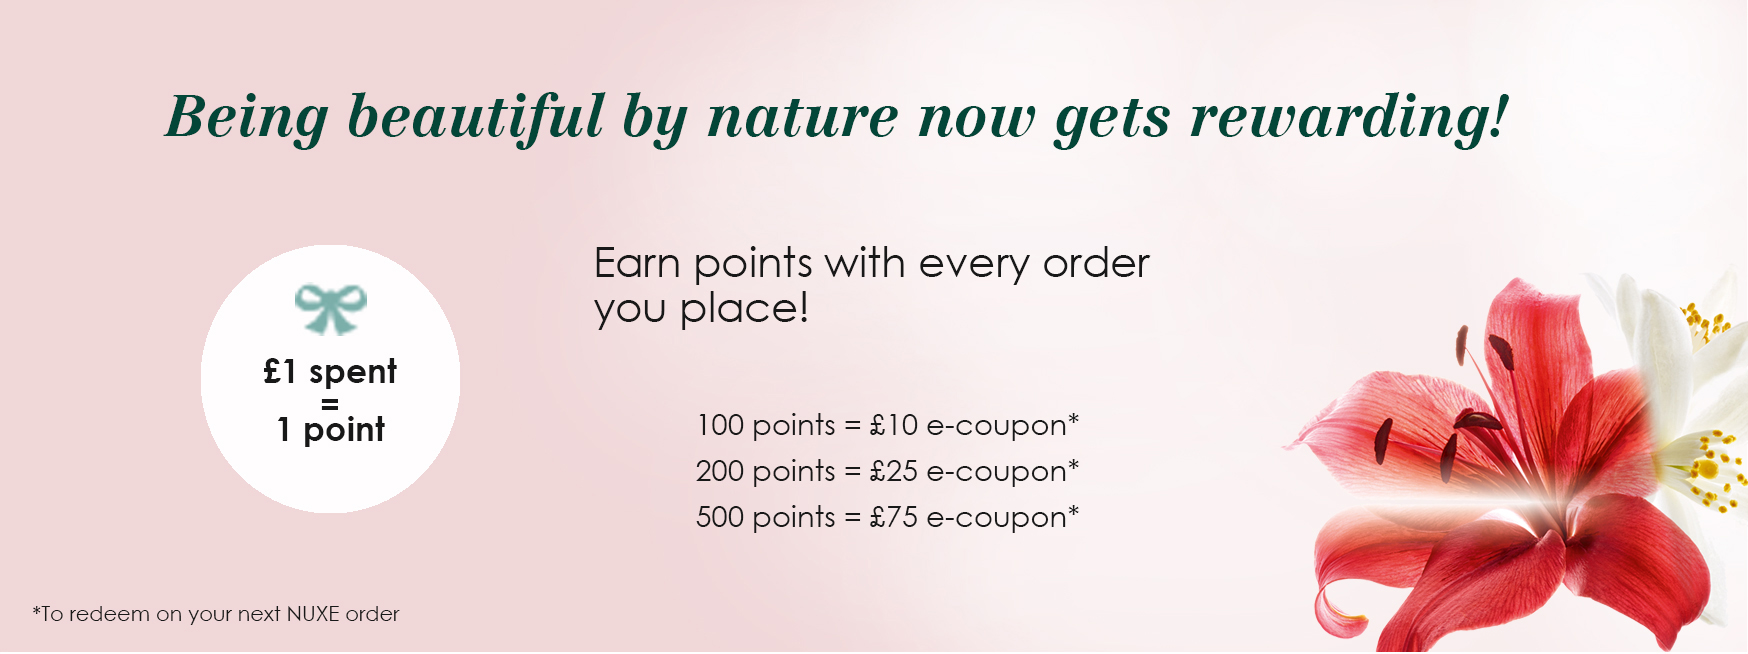 NUXE Loyalty Programme